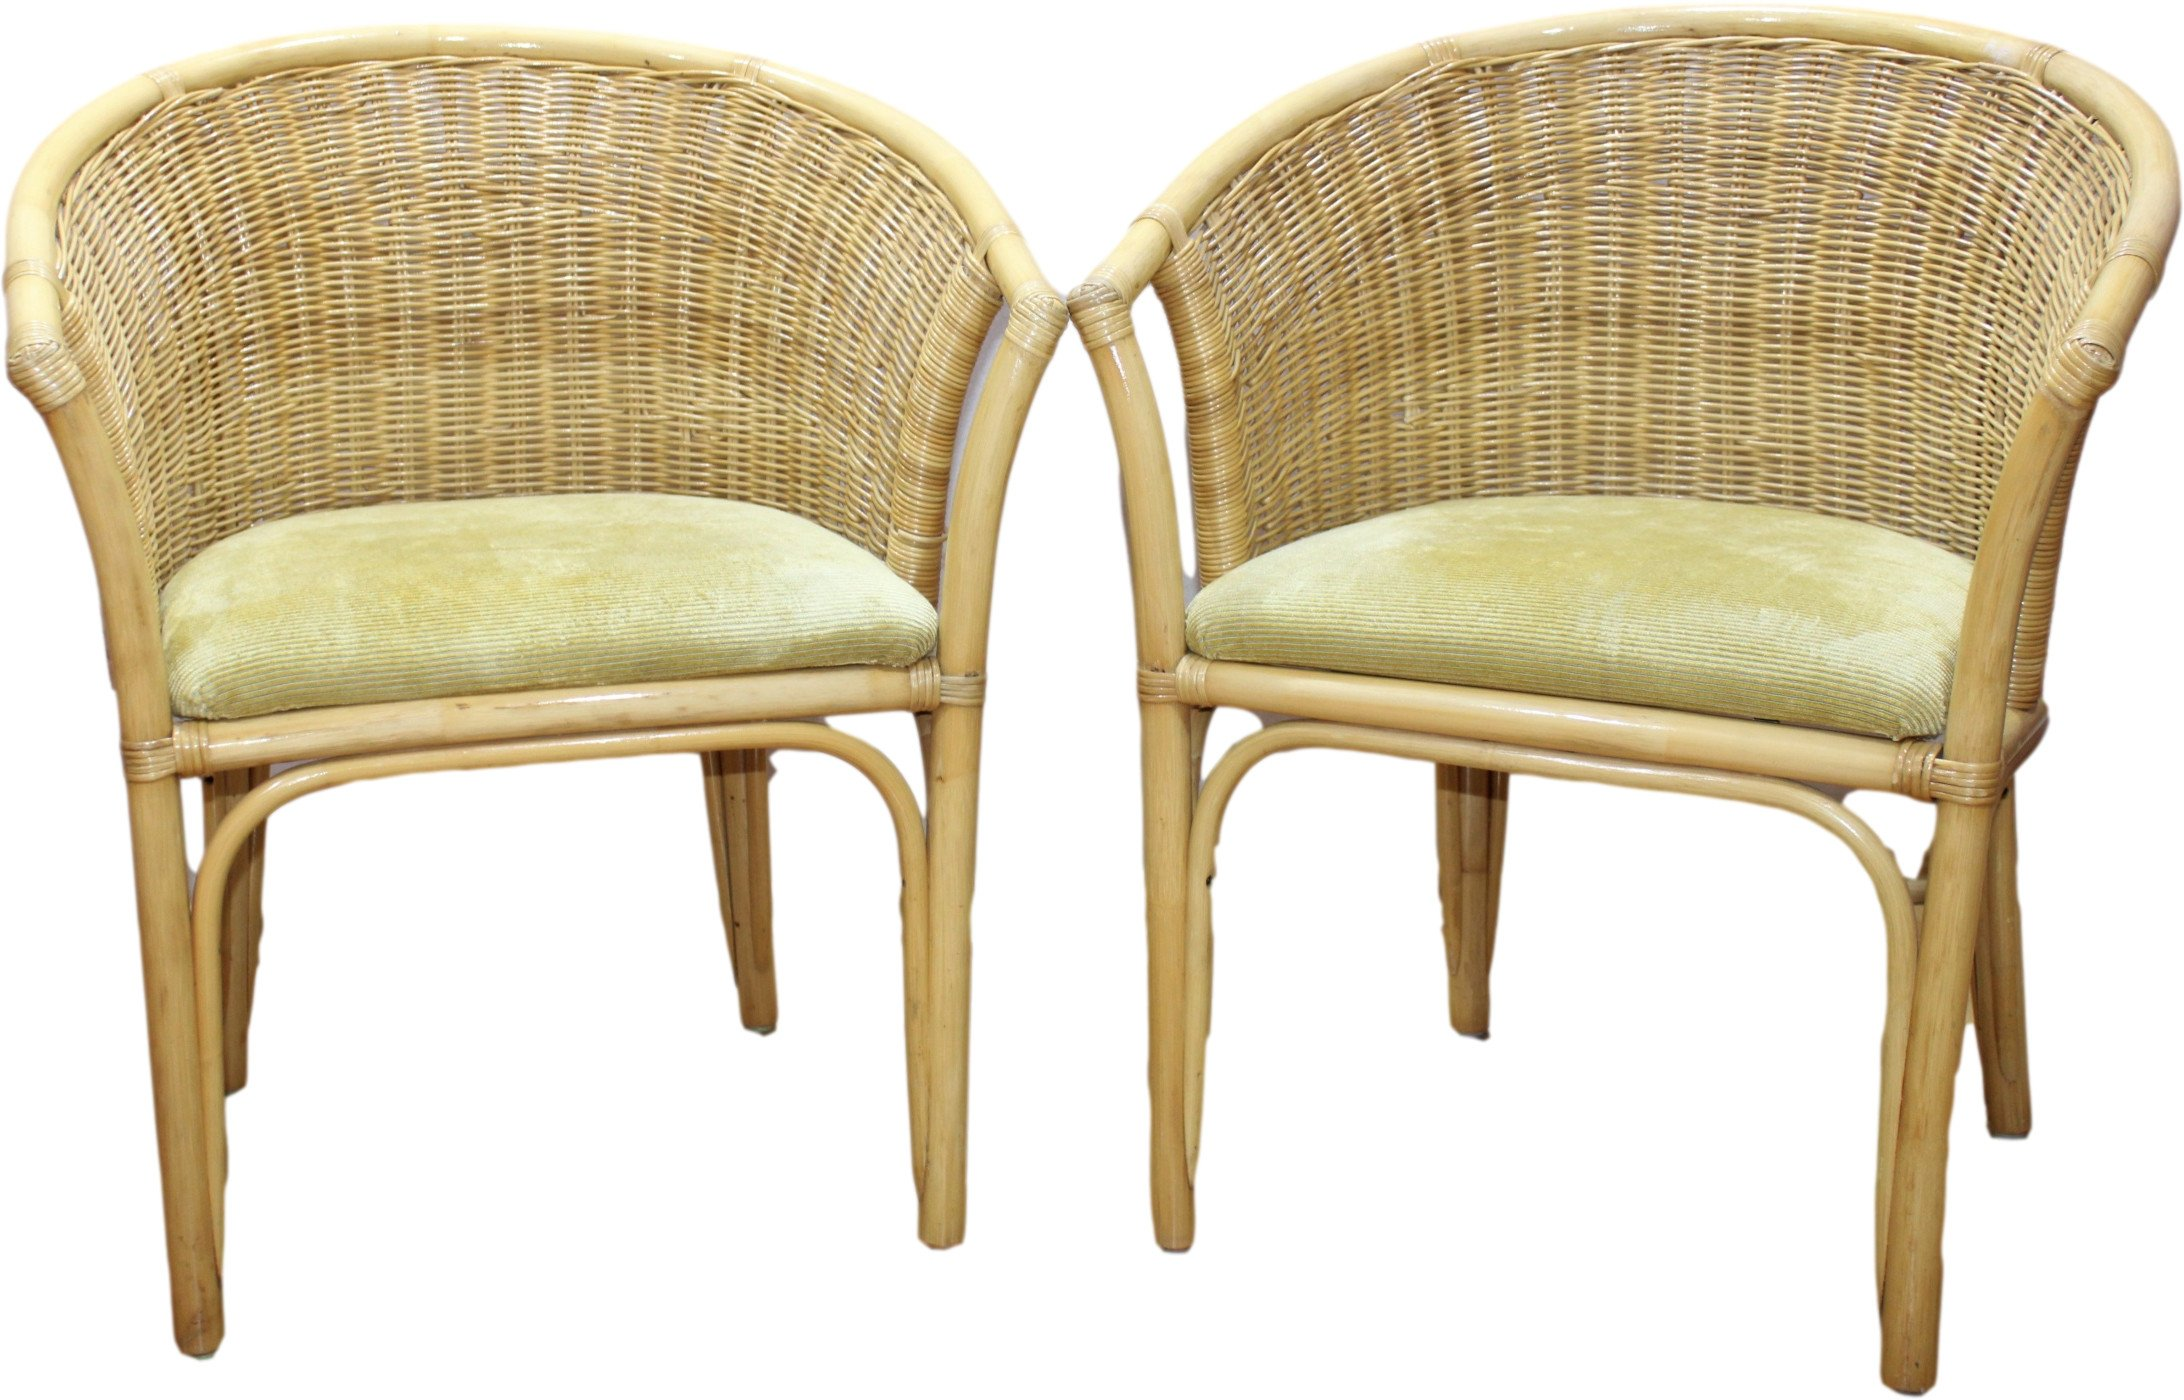 Pair of Armchairs, Roberti Rattan, Italy